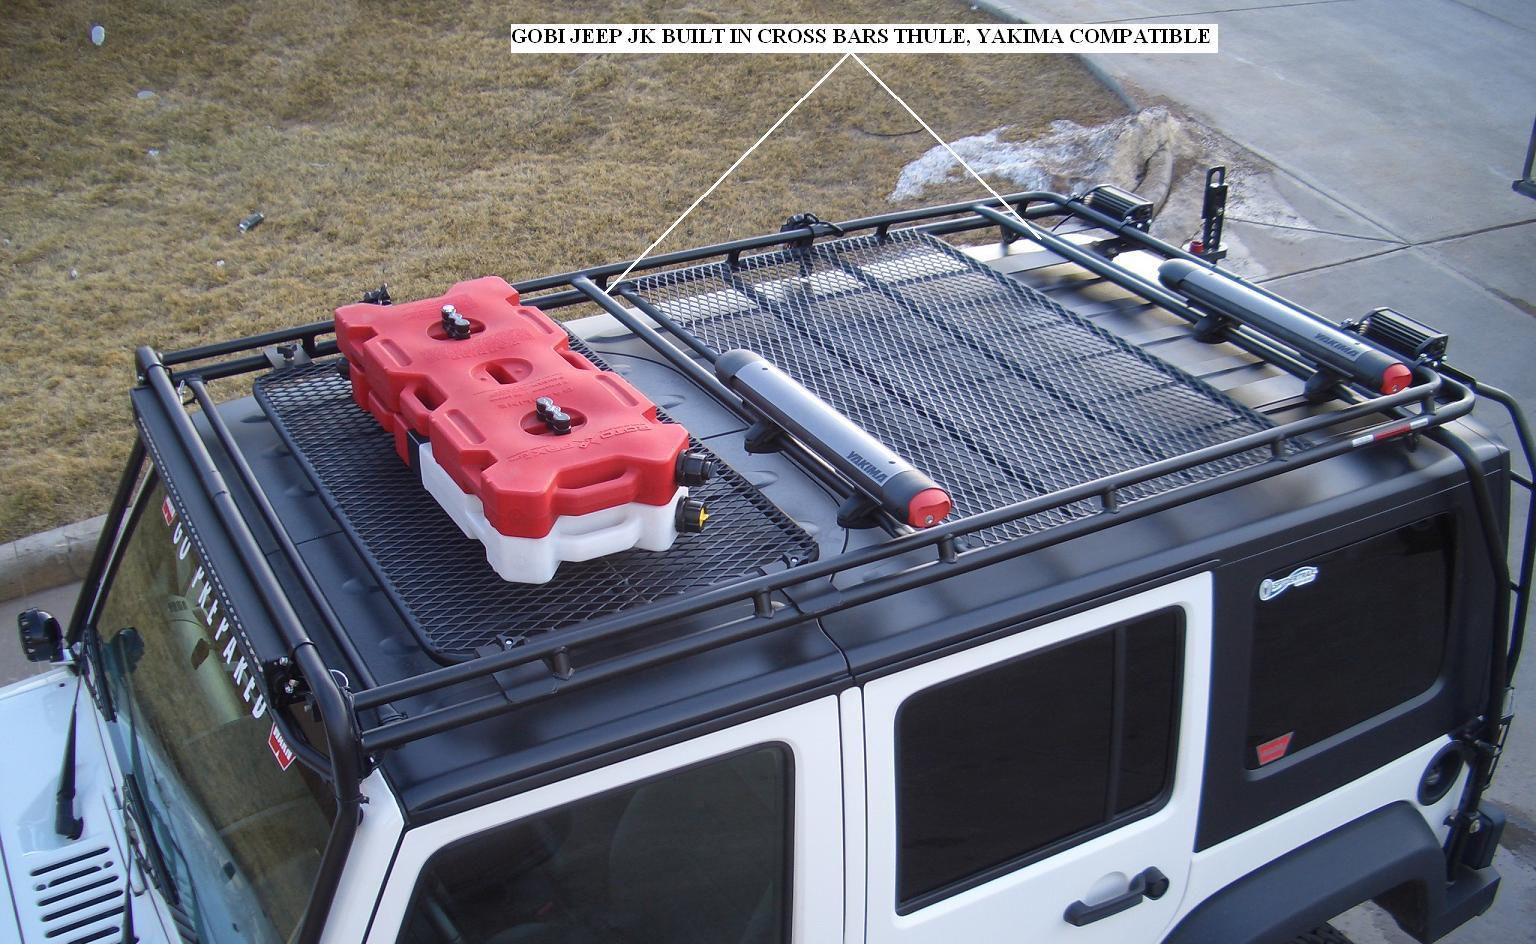 small resolution of jeep wrangler round led lights gobi rack gobi jeep jk built in cross bars yakima thule compatible with attached